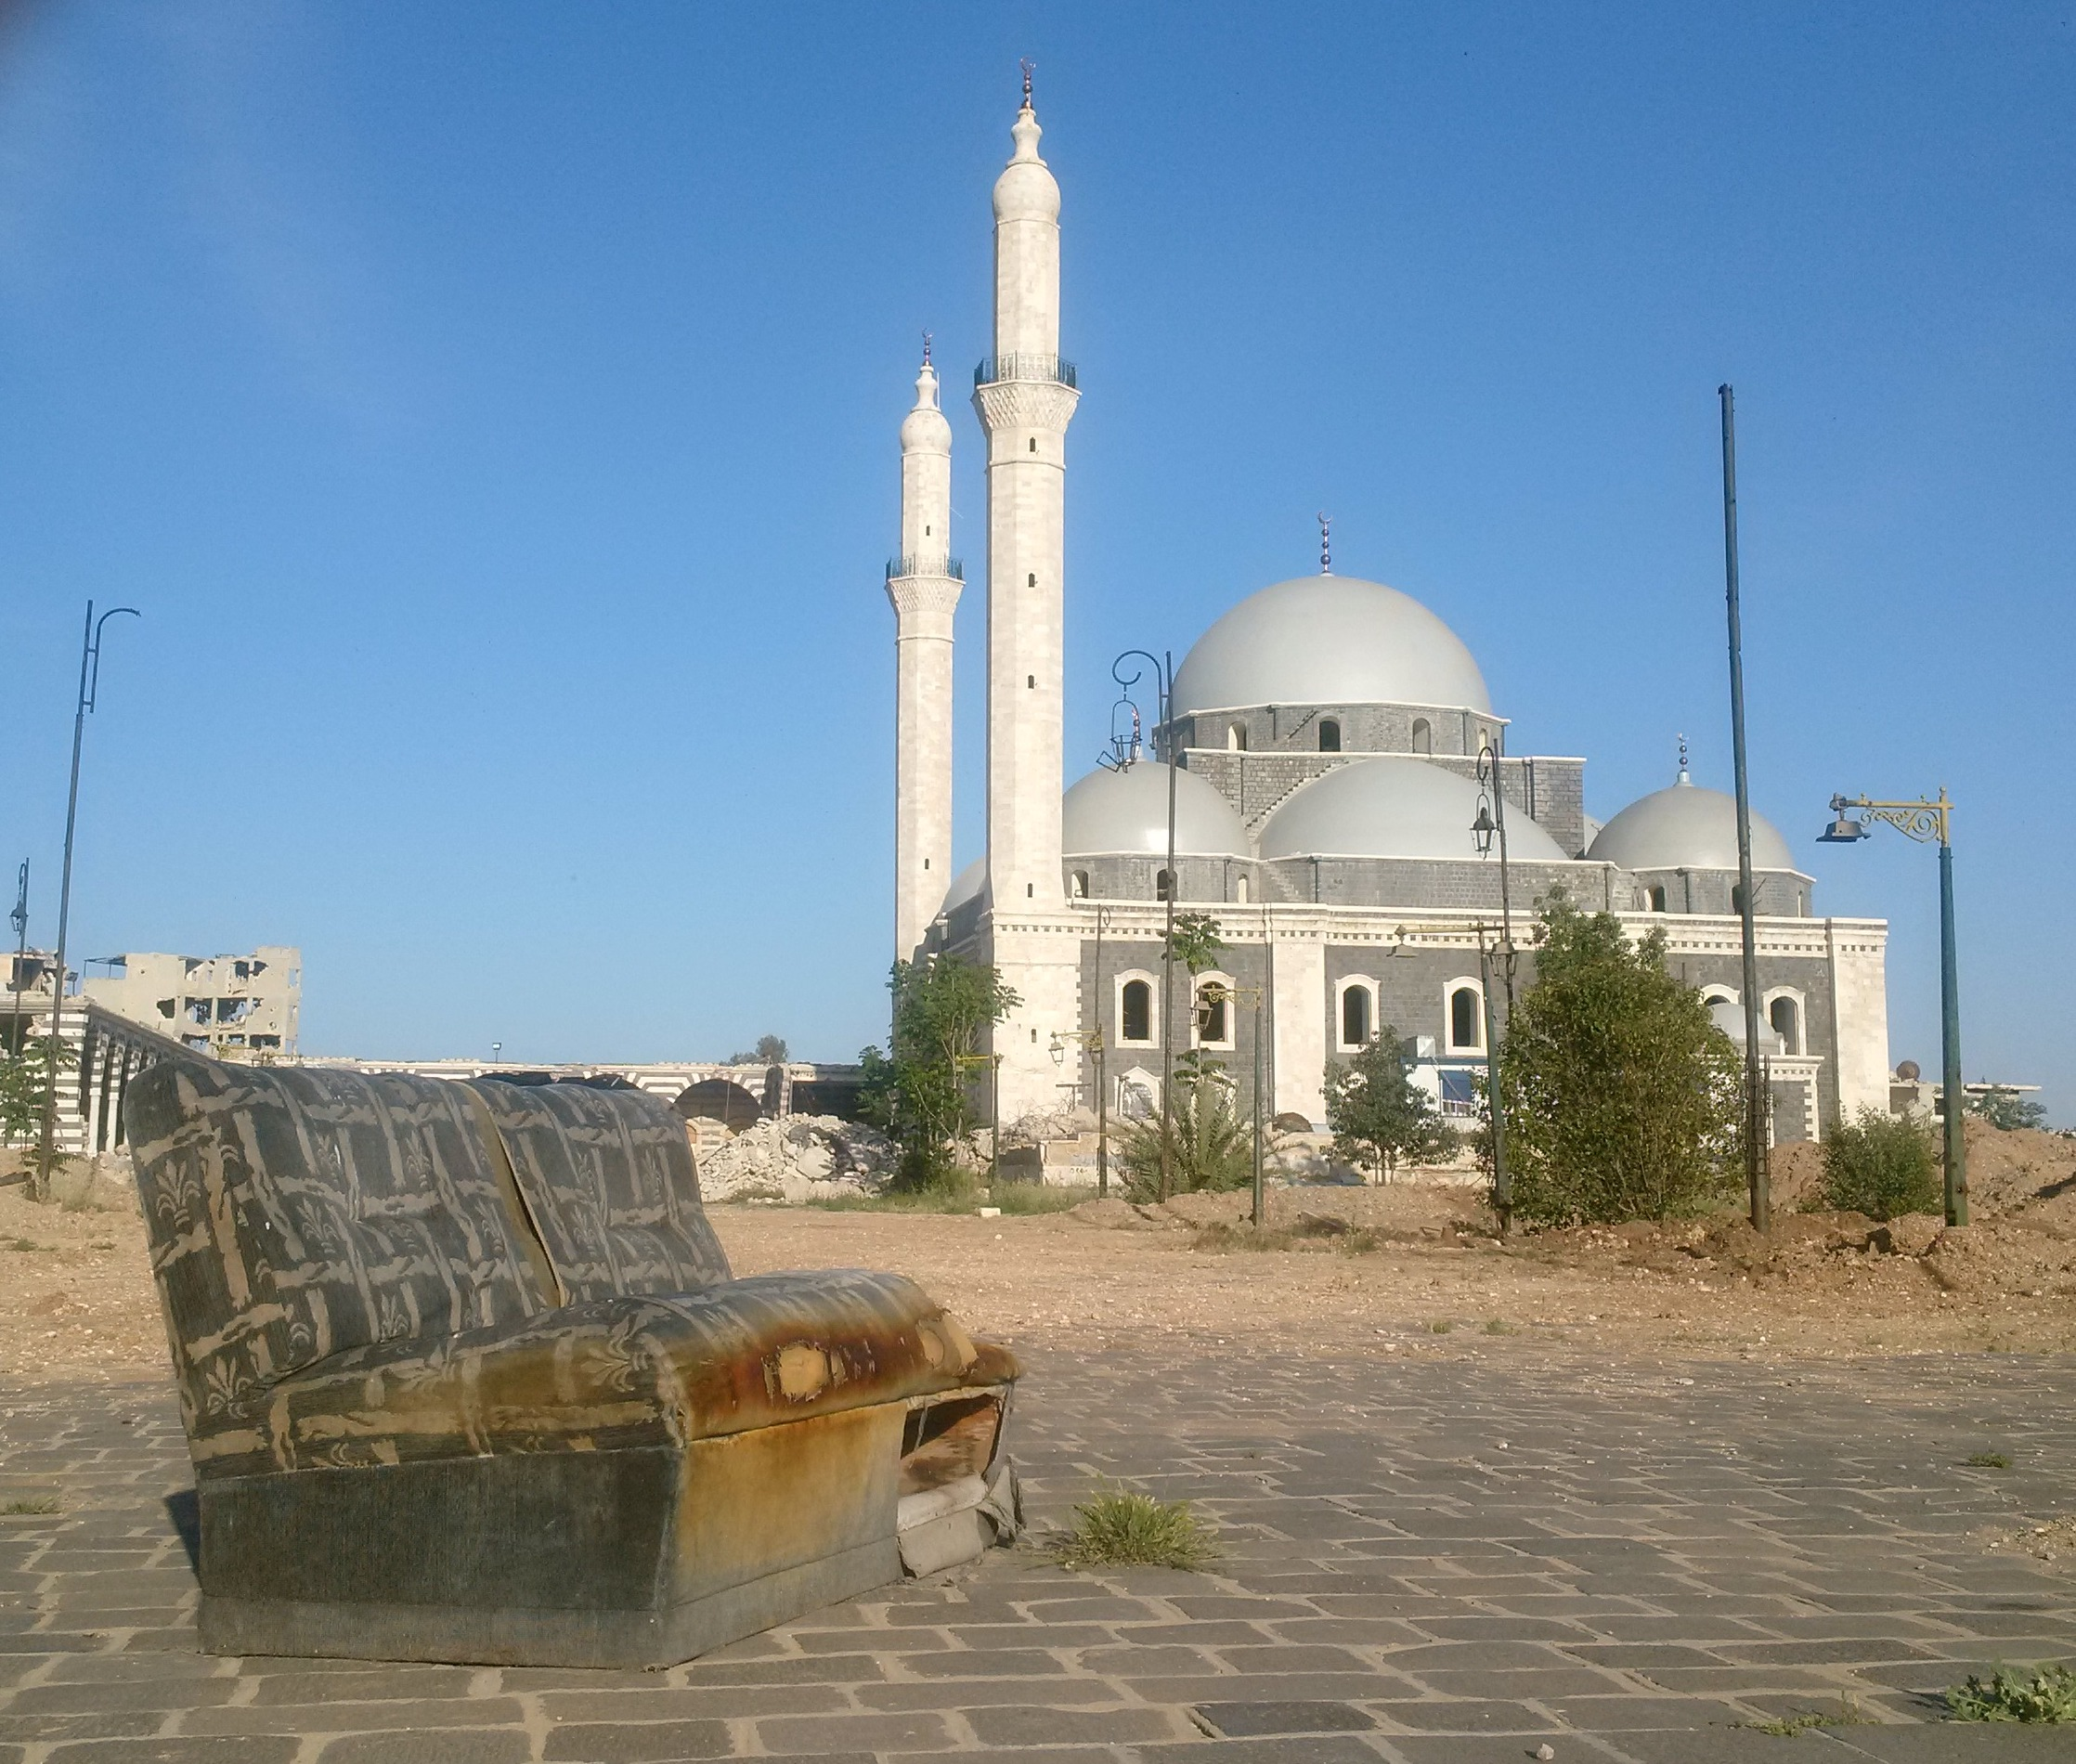 Khalid ibn al-Waleed Mosque in Homs, restored to a very rudimentary standard by the regime's Al-Iskan al-Askeri, the Military Housing outfit.